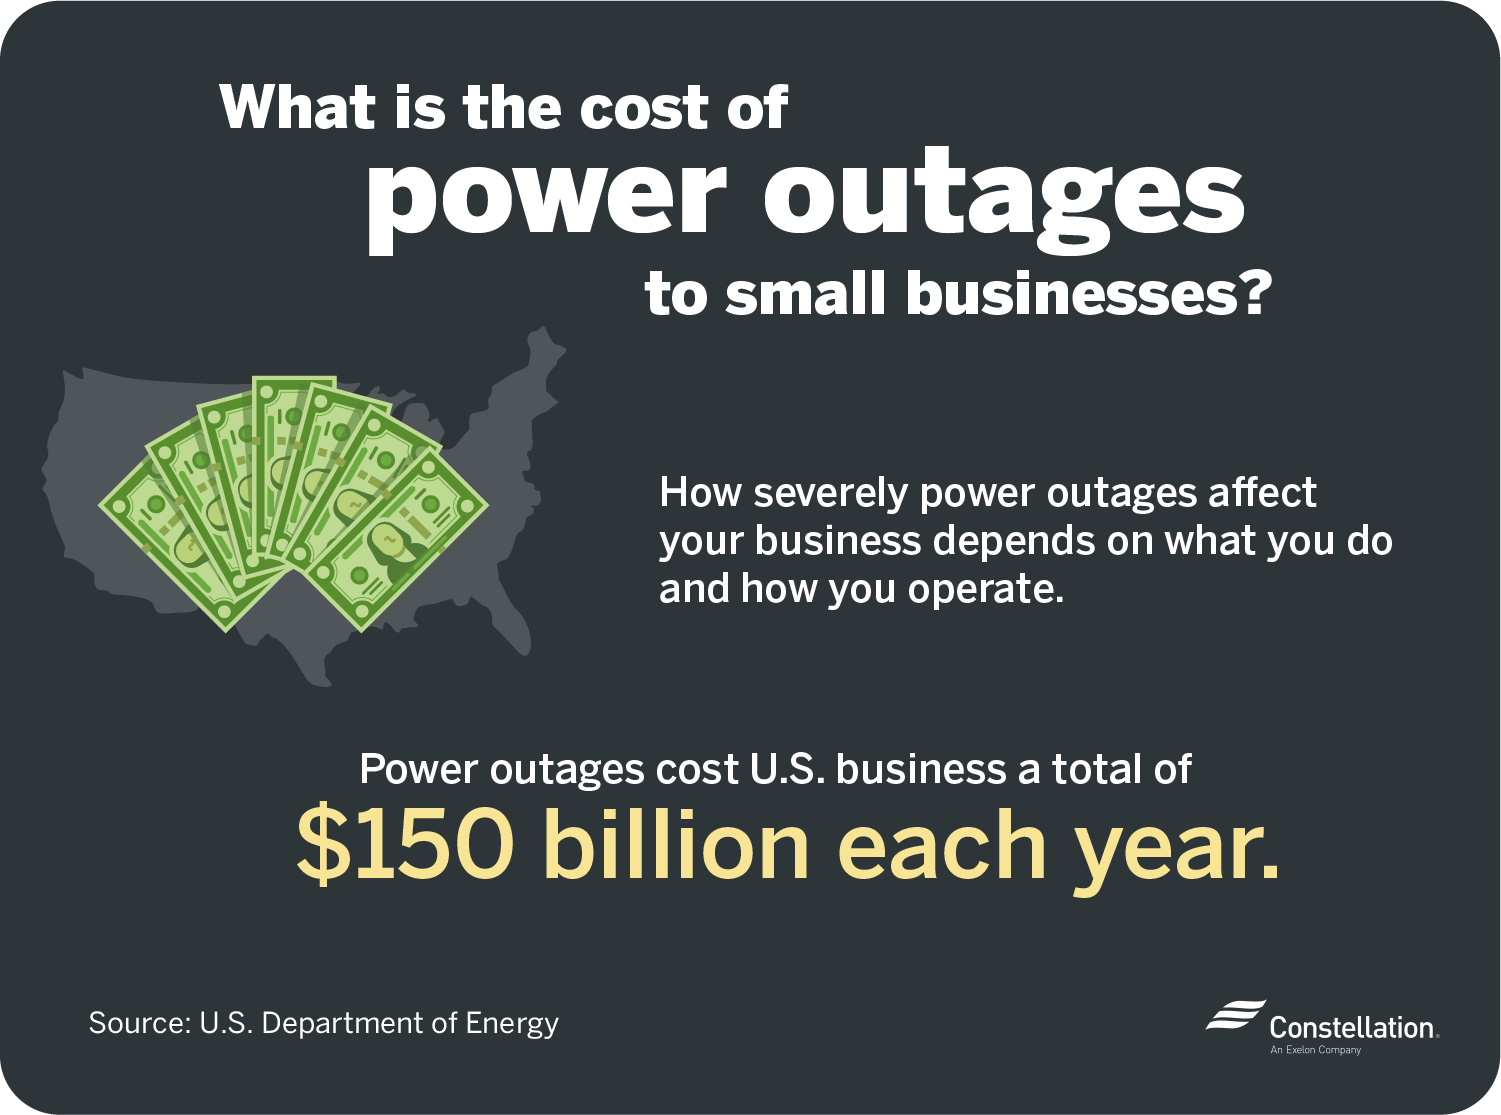 What is the cost of a power outage to a small business?